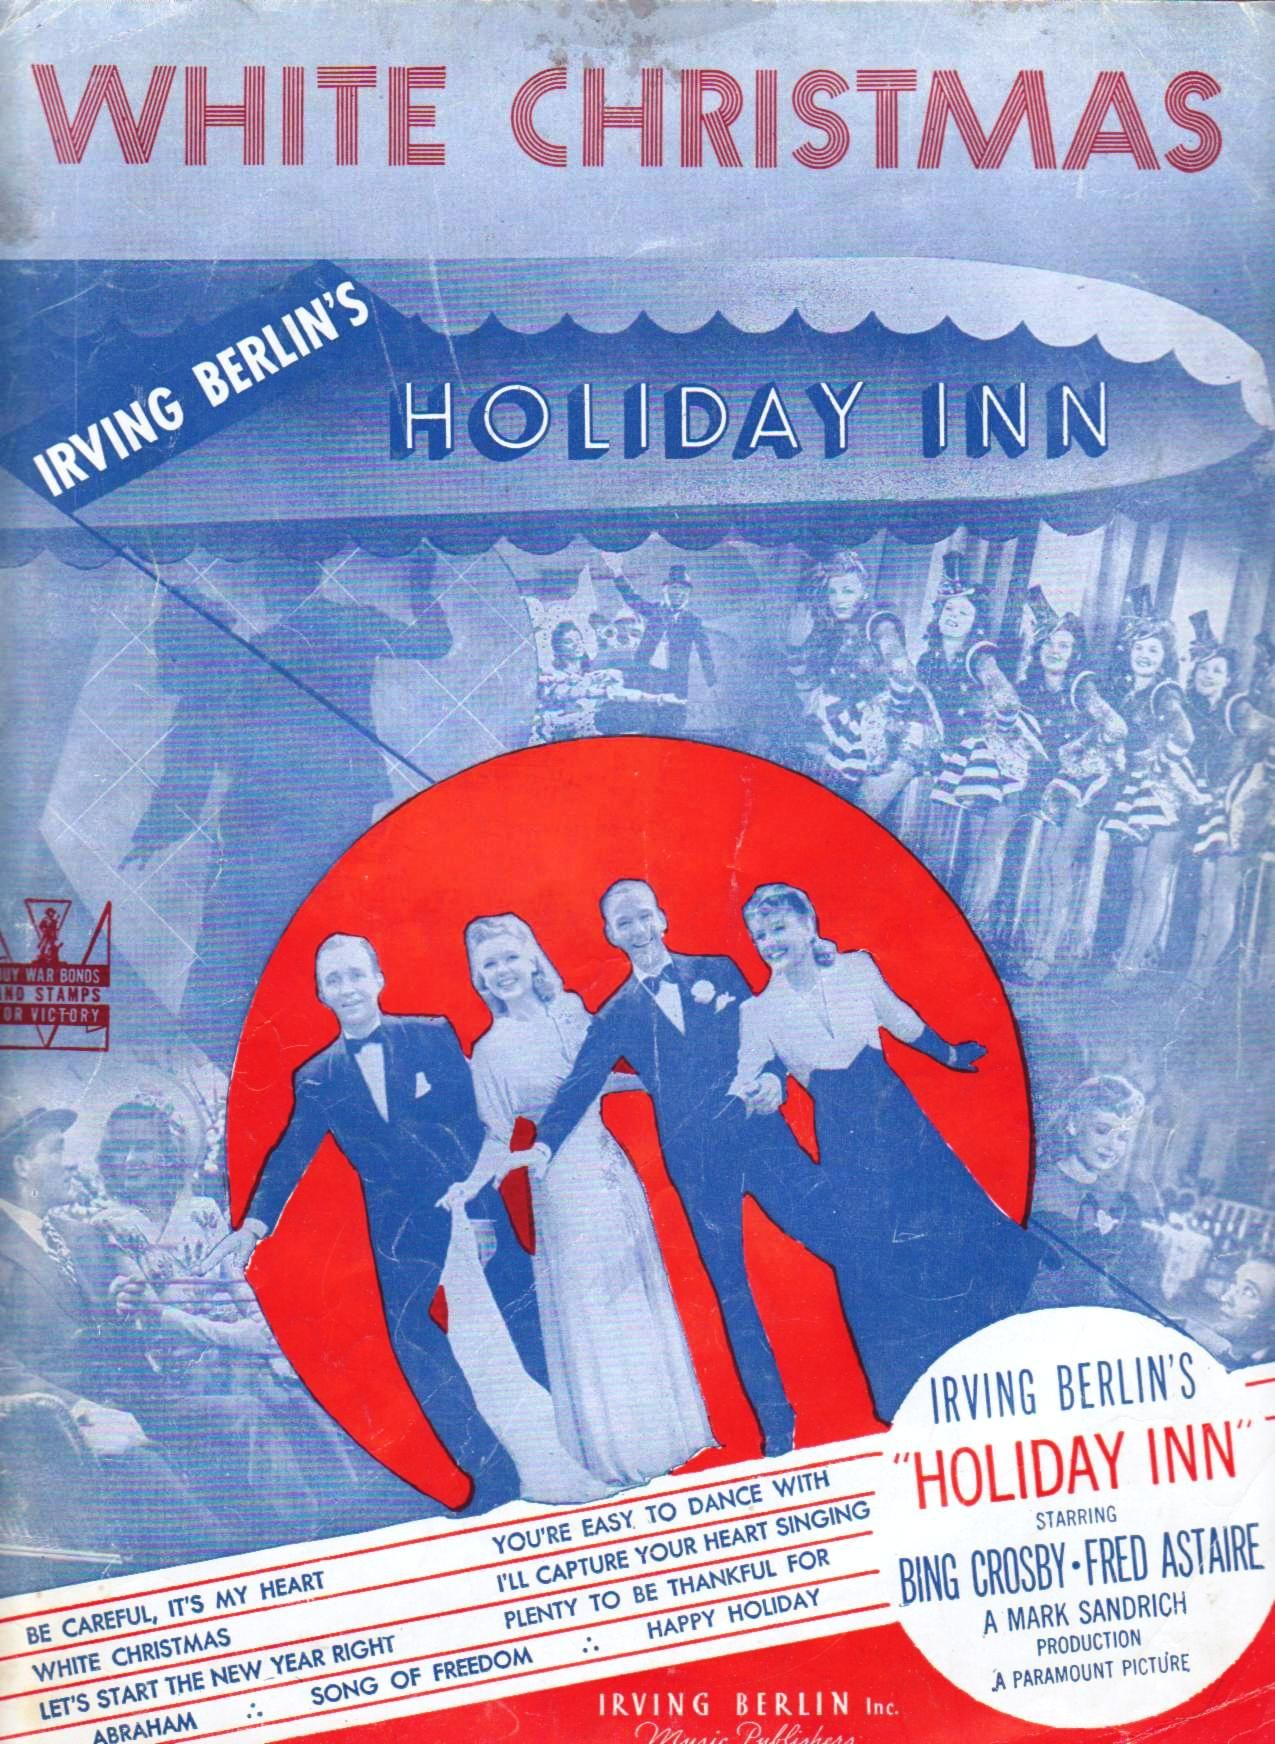 White Christmas Holiday Inn is one of my favorite Christmas movies ...